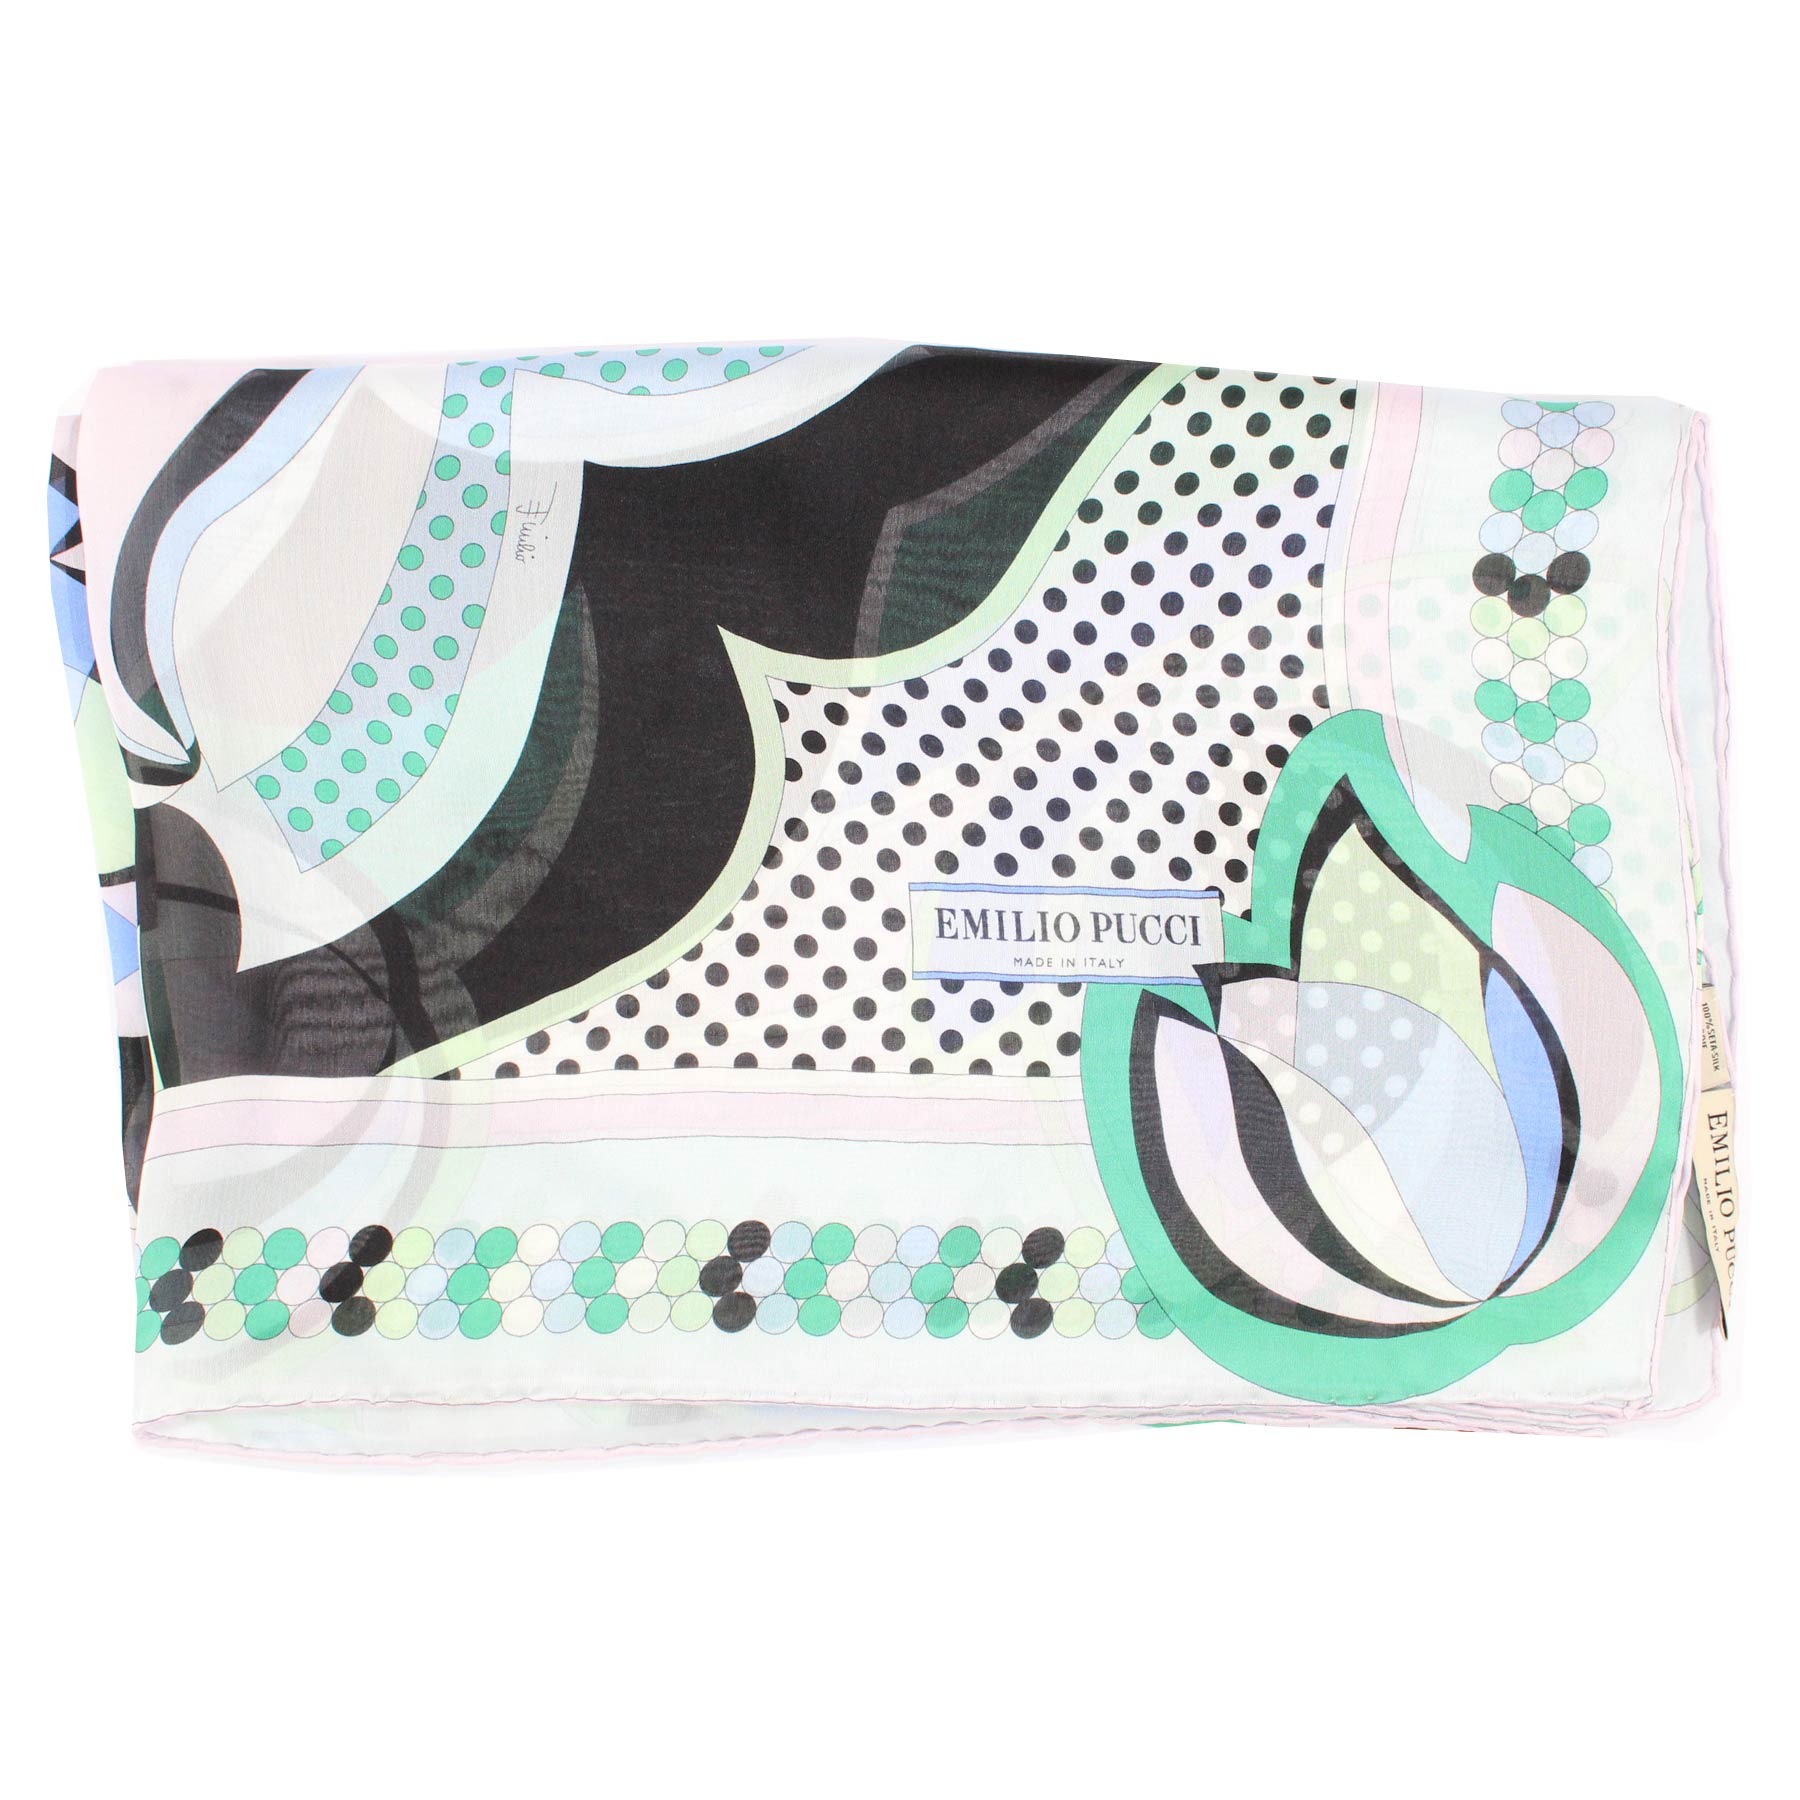 Emilio Pucci Scarf Green Blue - Extra Large Chiffon Silk Wrap SALE